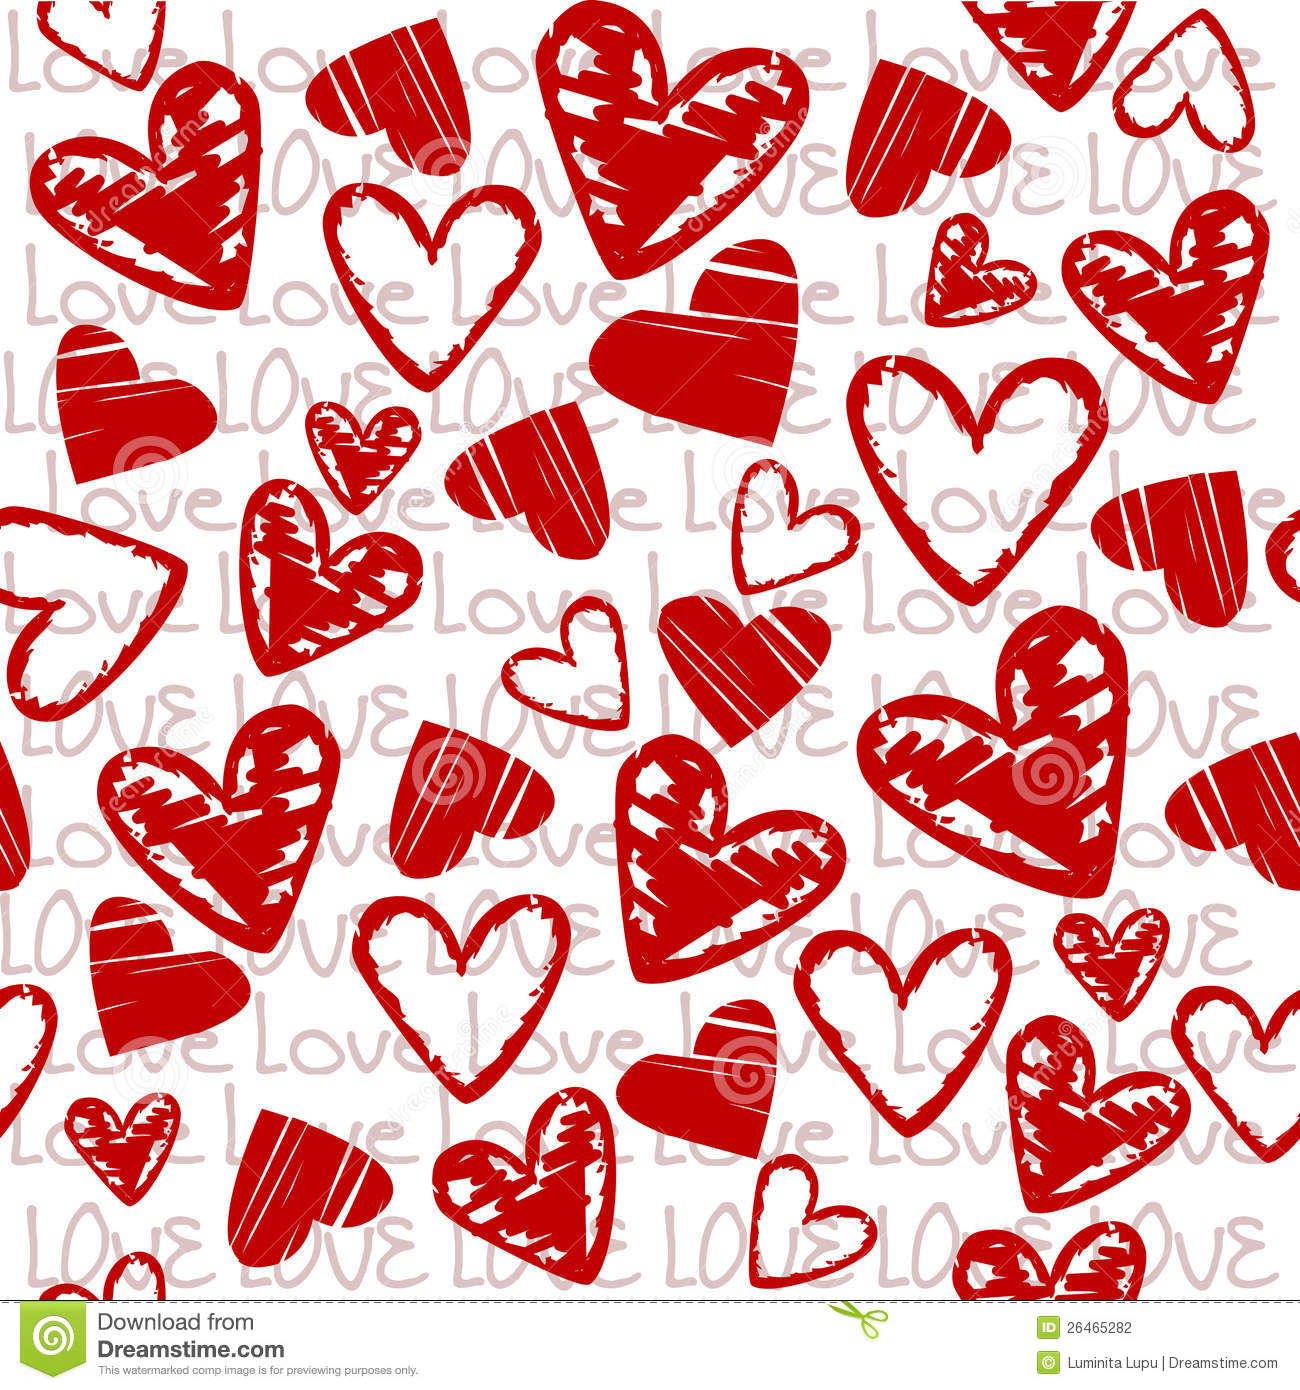 Love background with stylized hearts